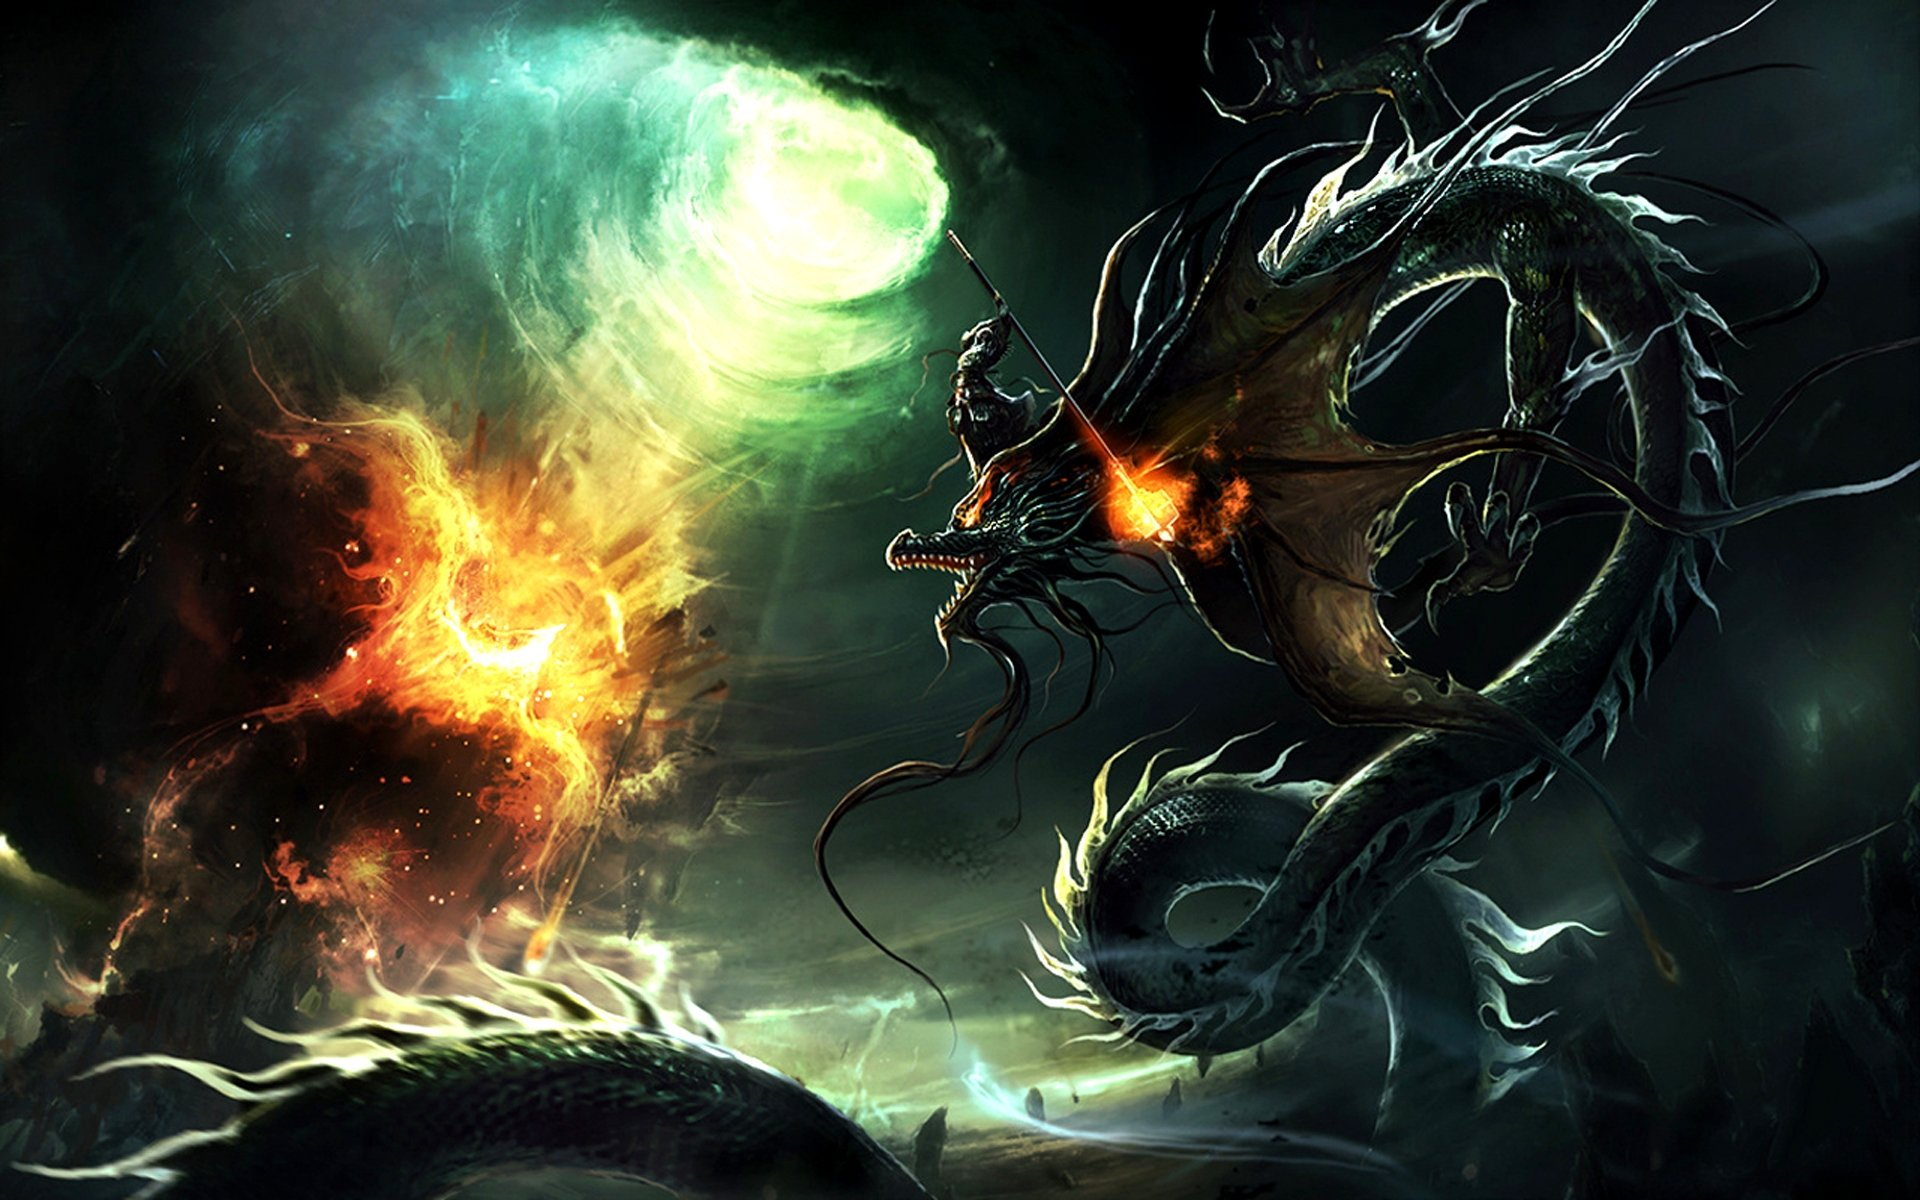 Popular Wallpaper Music Fire - Epic-Picture-immediate-music-33831268-1920-1200  Collection_231071.jpg